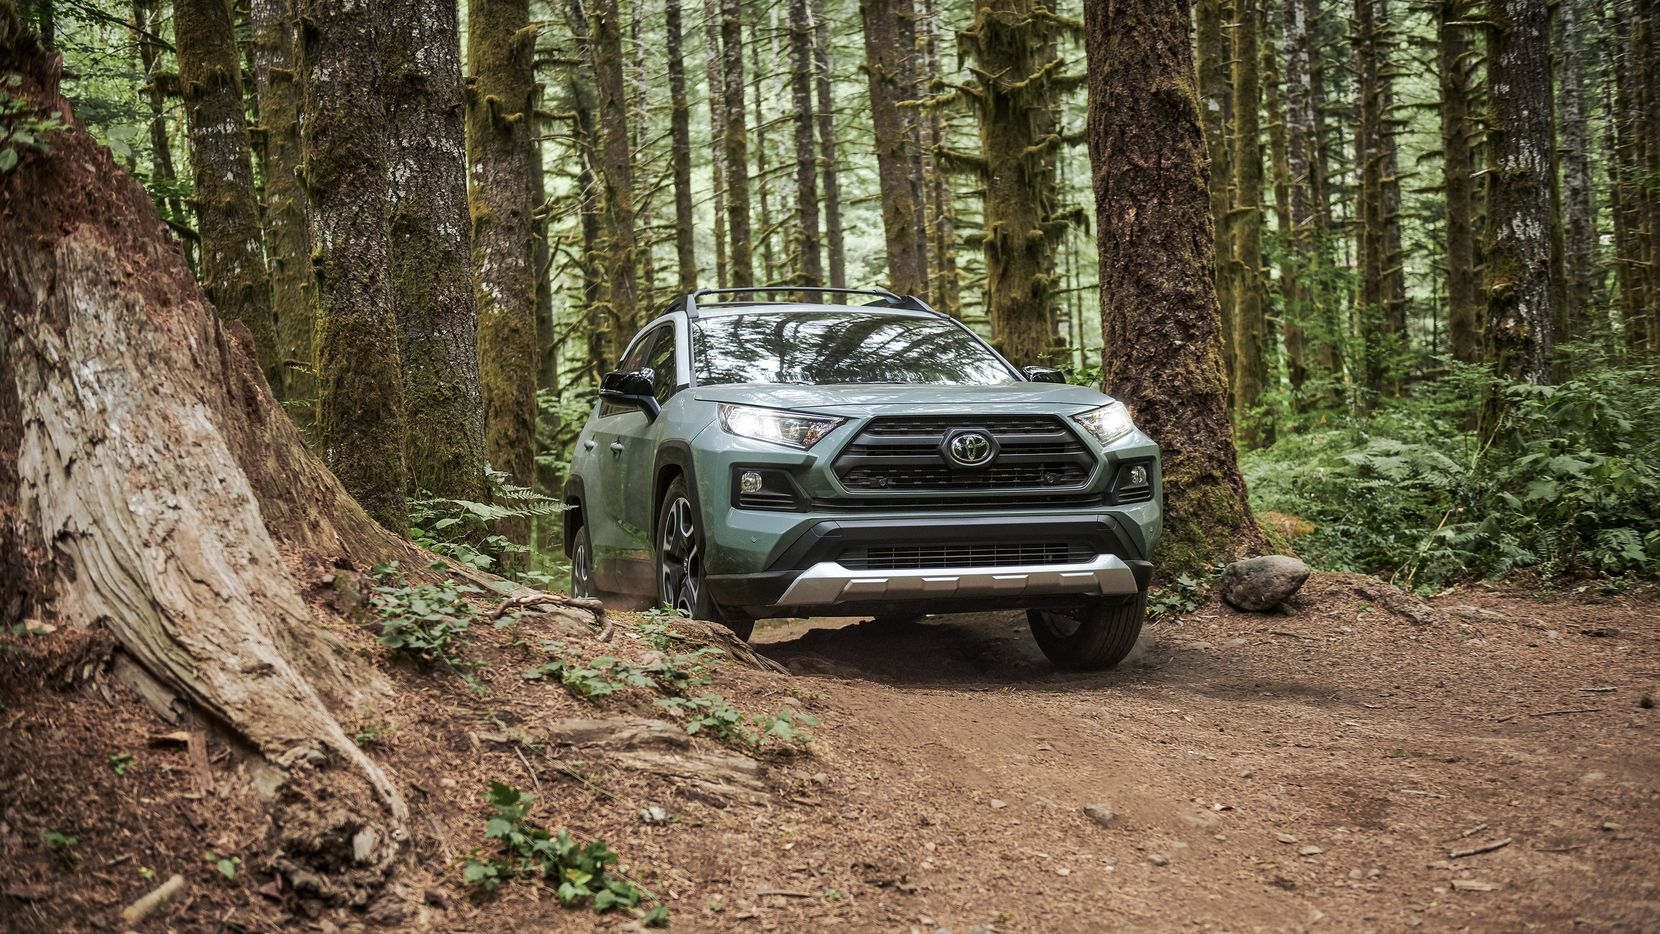 Adventure brings a rugged personality to the Toyota lineup.